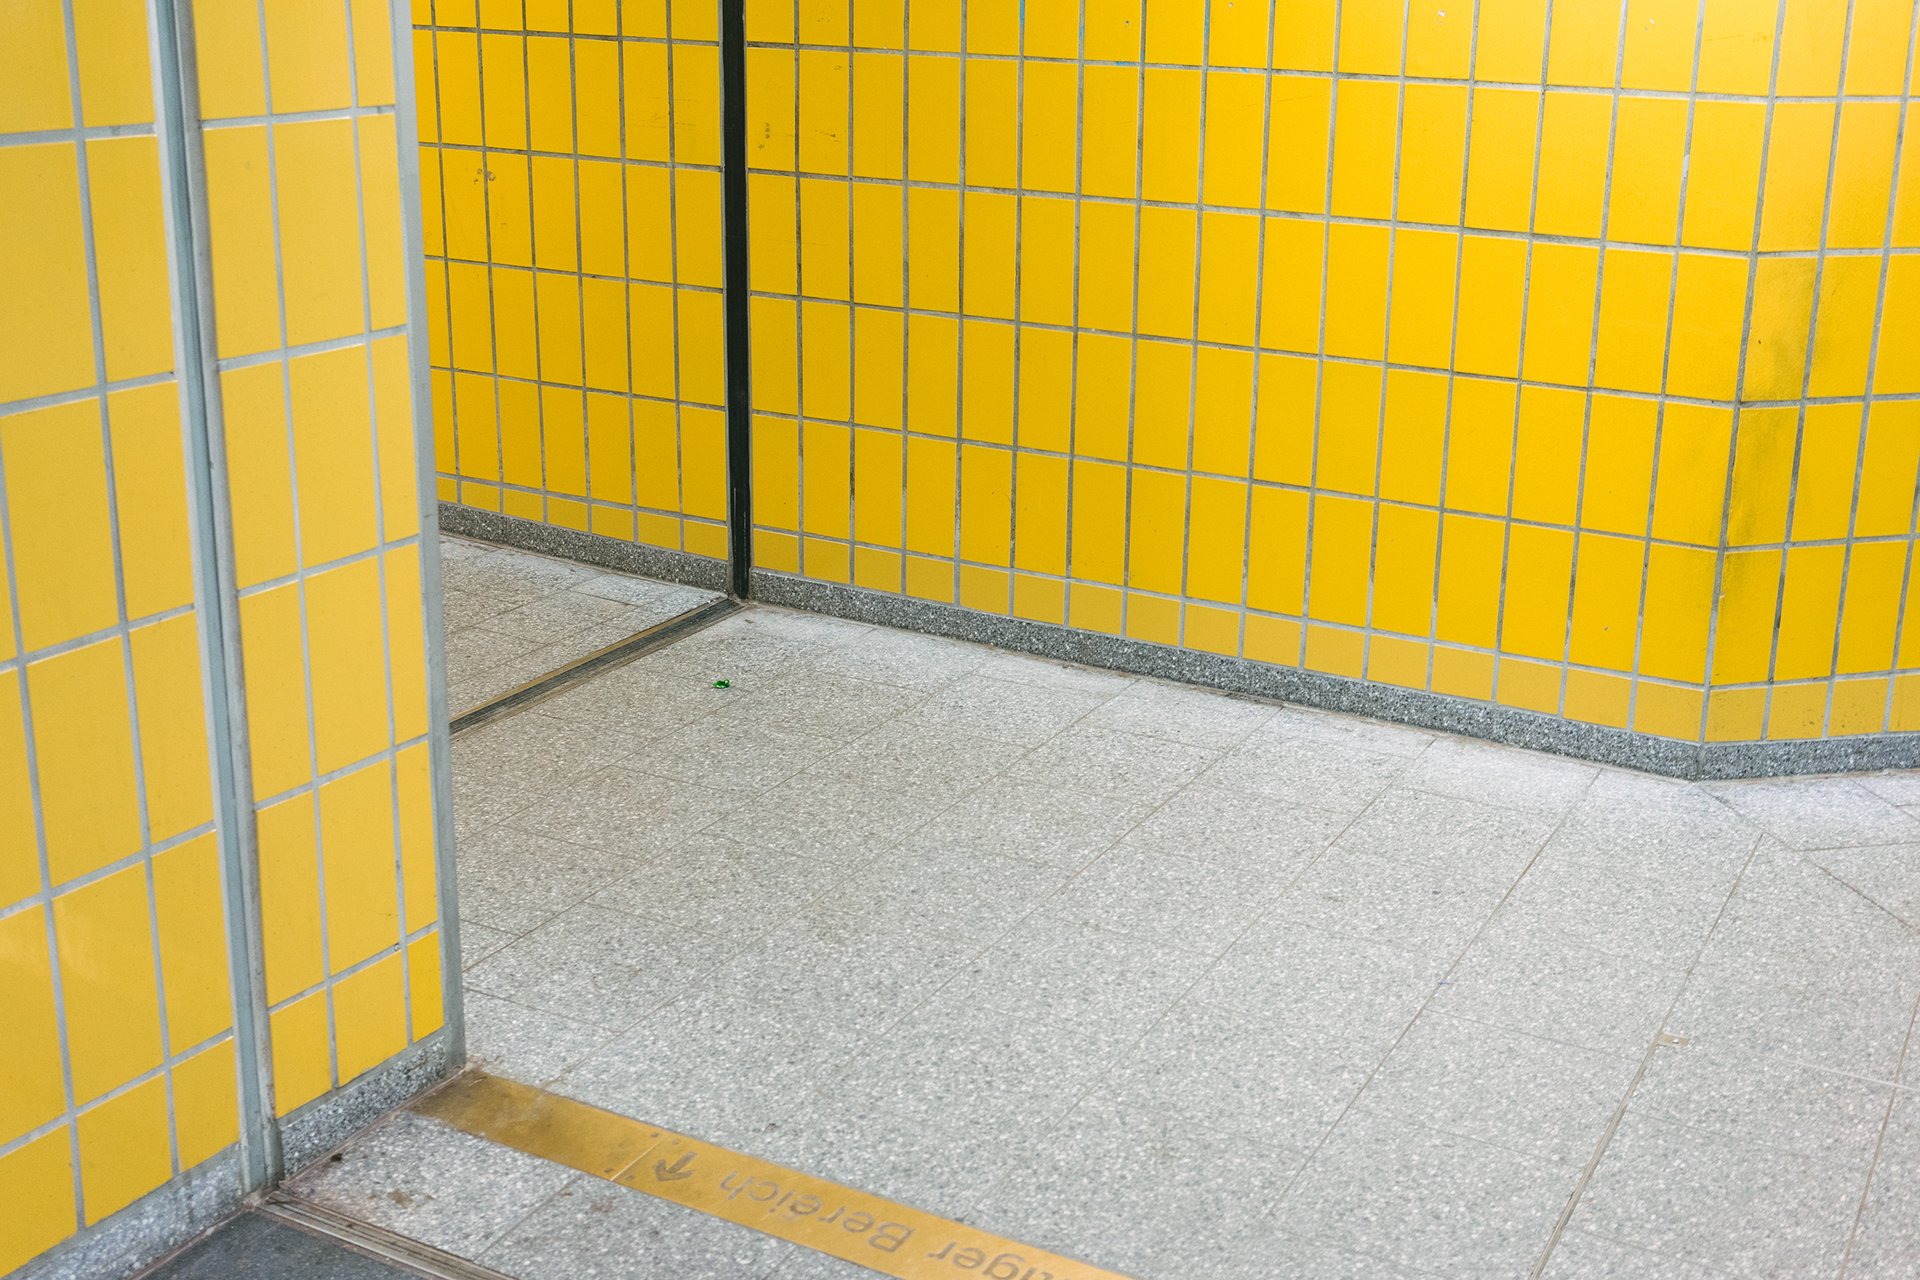 Minimalist Pictures of a Metro Station in Hamburg